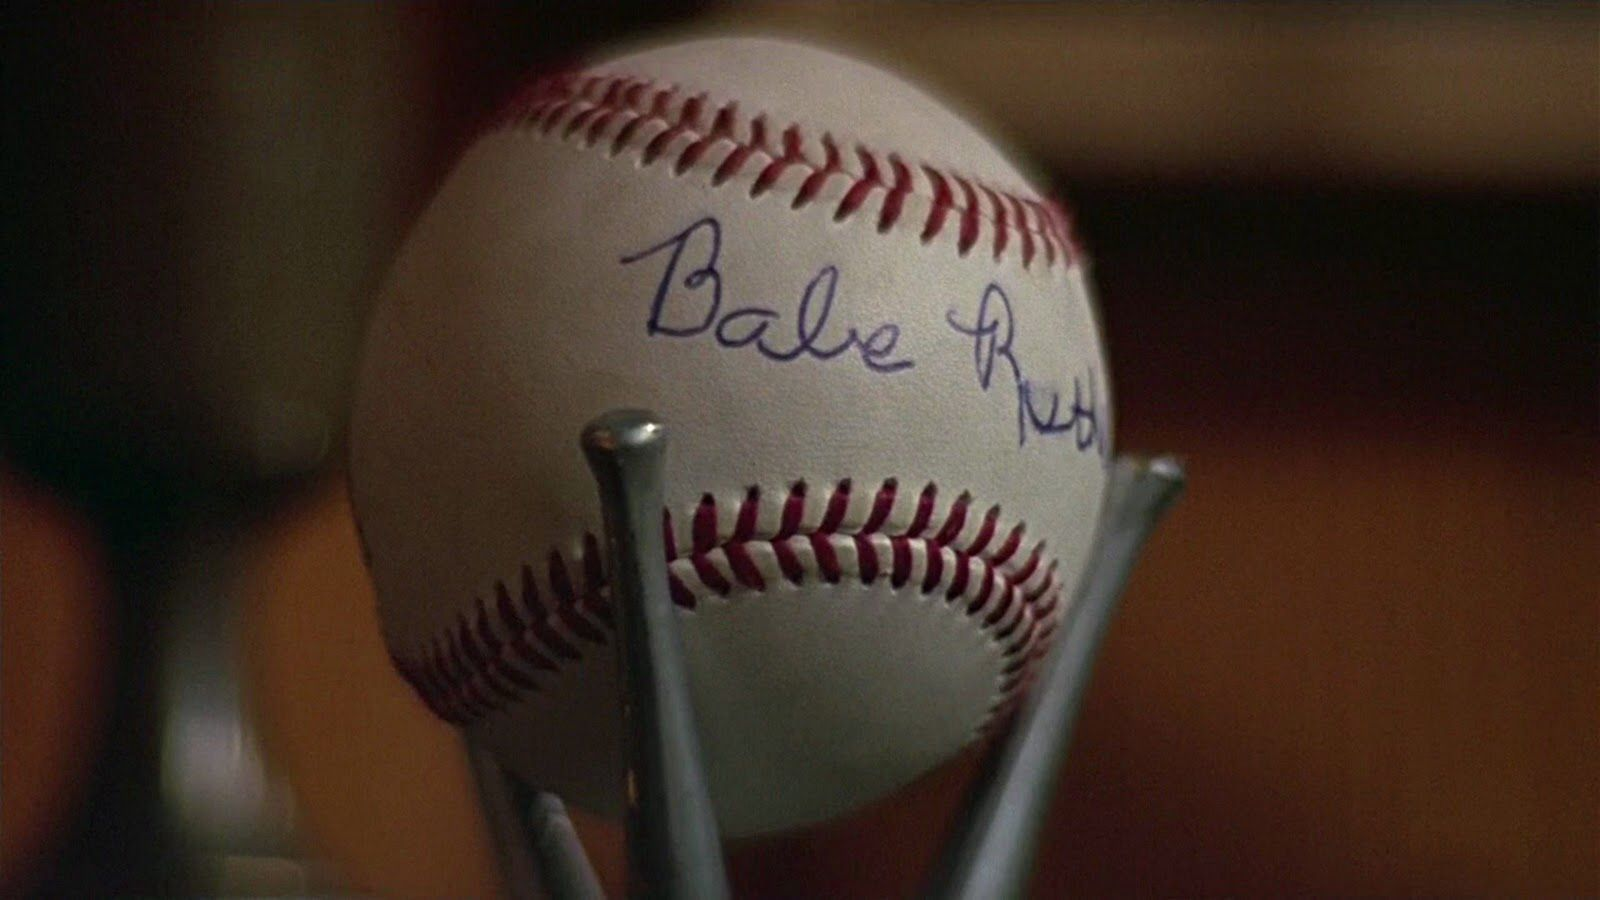 The Fake Babe Ruth Signed Ball Sandlot The Sandlot Babe Ruth Baseball Baseball Movies